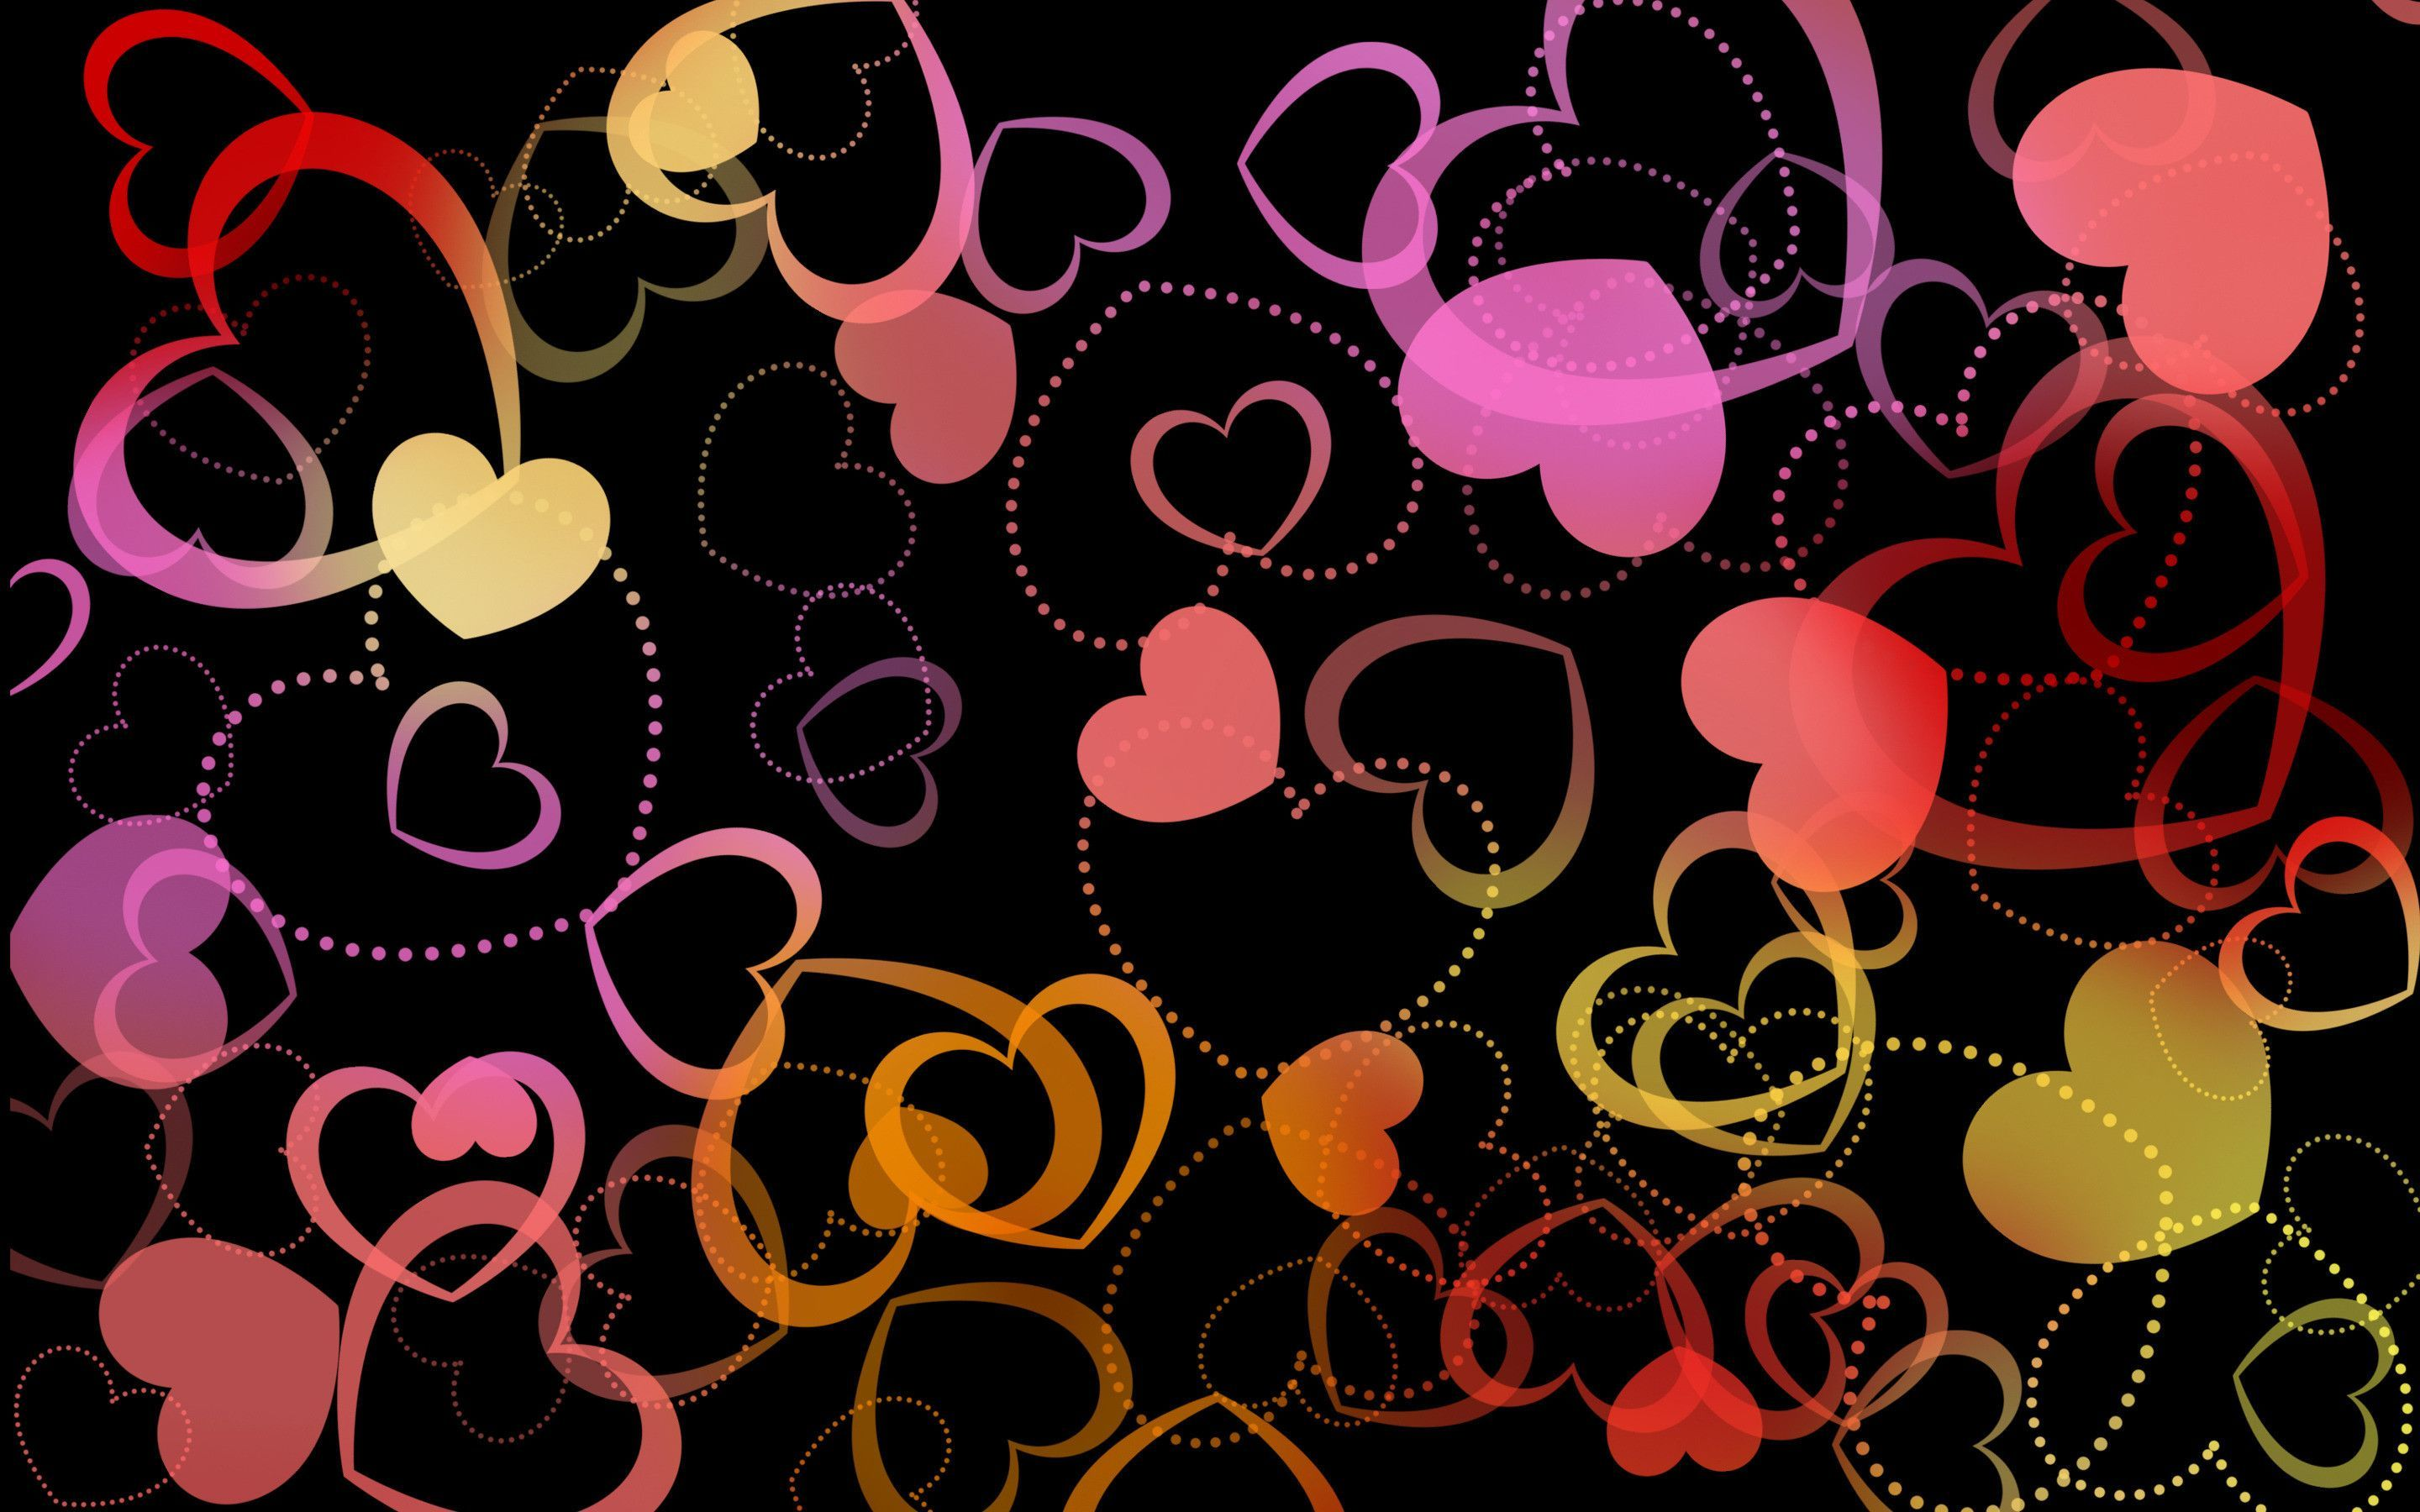 hearts desktop wallpaper - photo #47